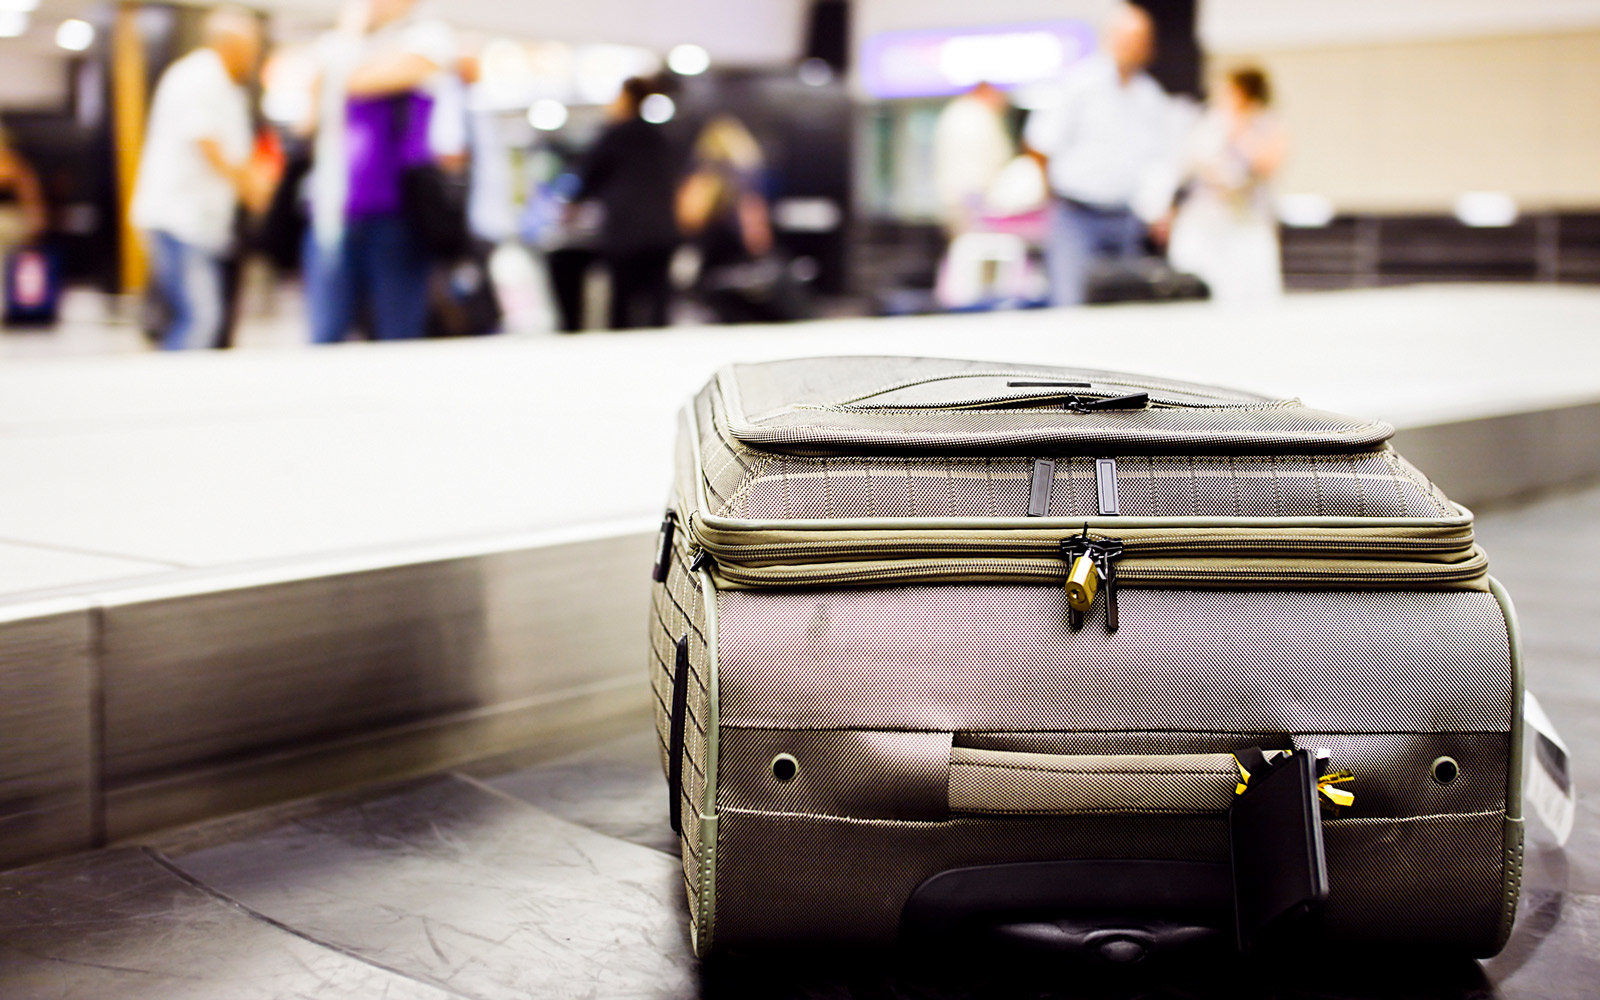 The Best Luggage Trackers for Locating Lost Travel Bags